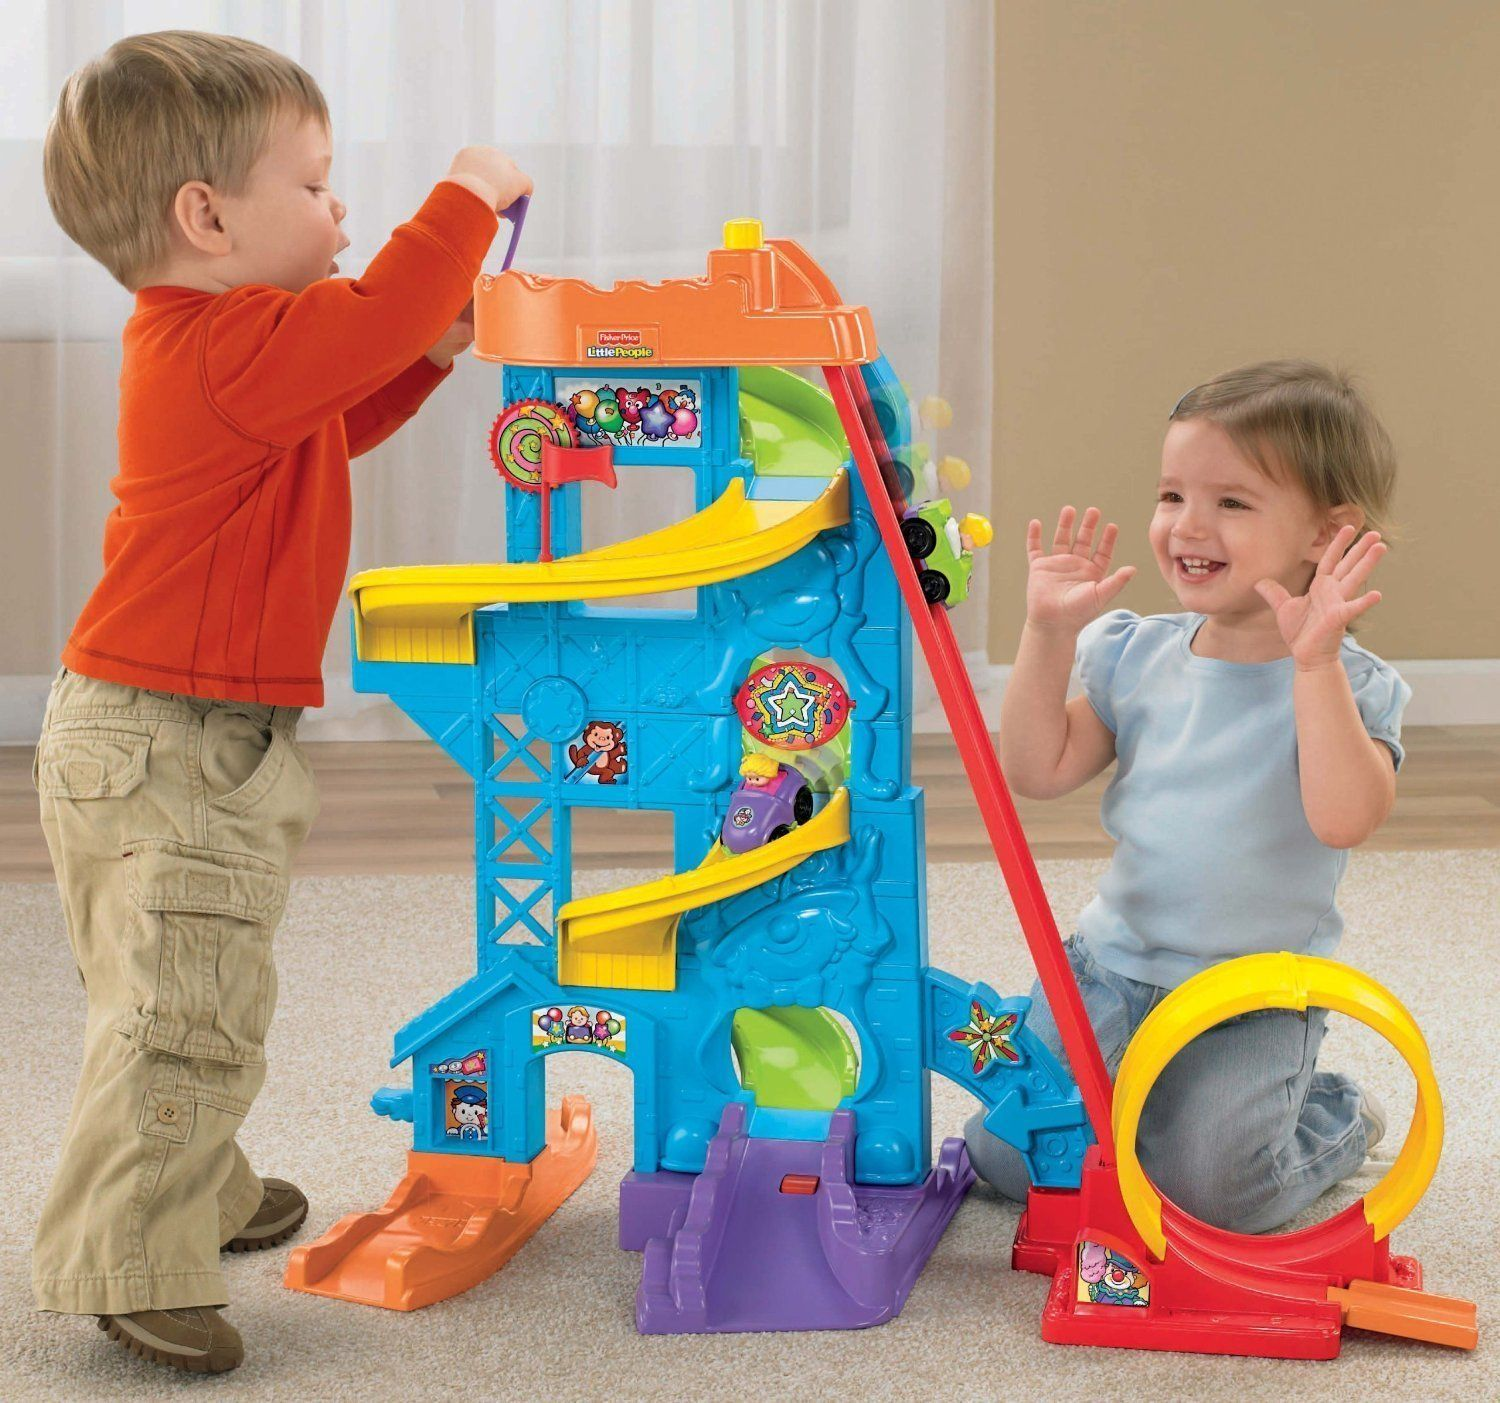 Best Toys for 2 Year old Boys in 2014 Gifts for Christmas and 2